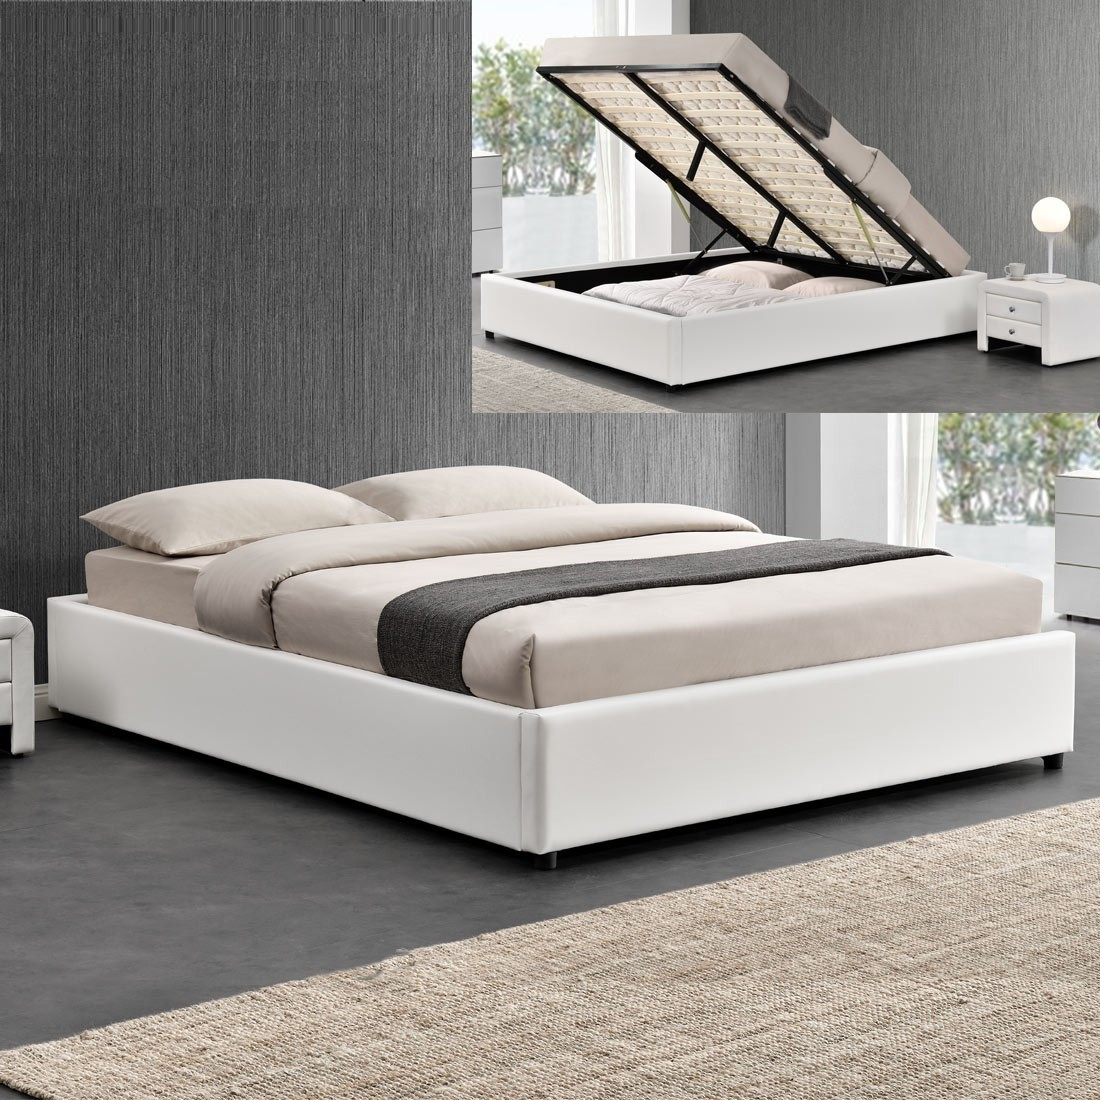 ensemble matelas sommier coffre 140 blanc. Black Bedroom Furniture Sets. Home Design Ideas